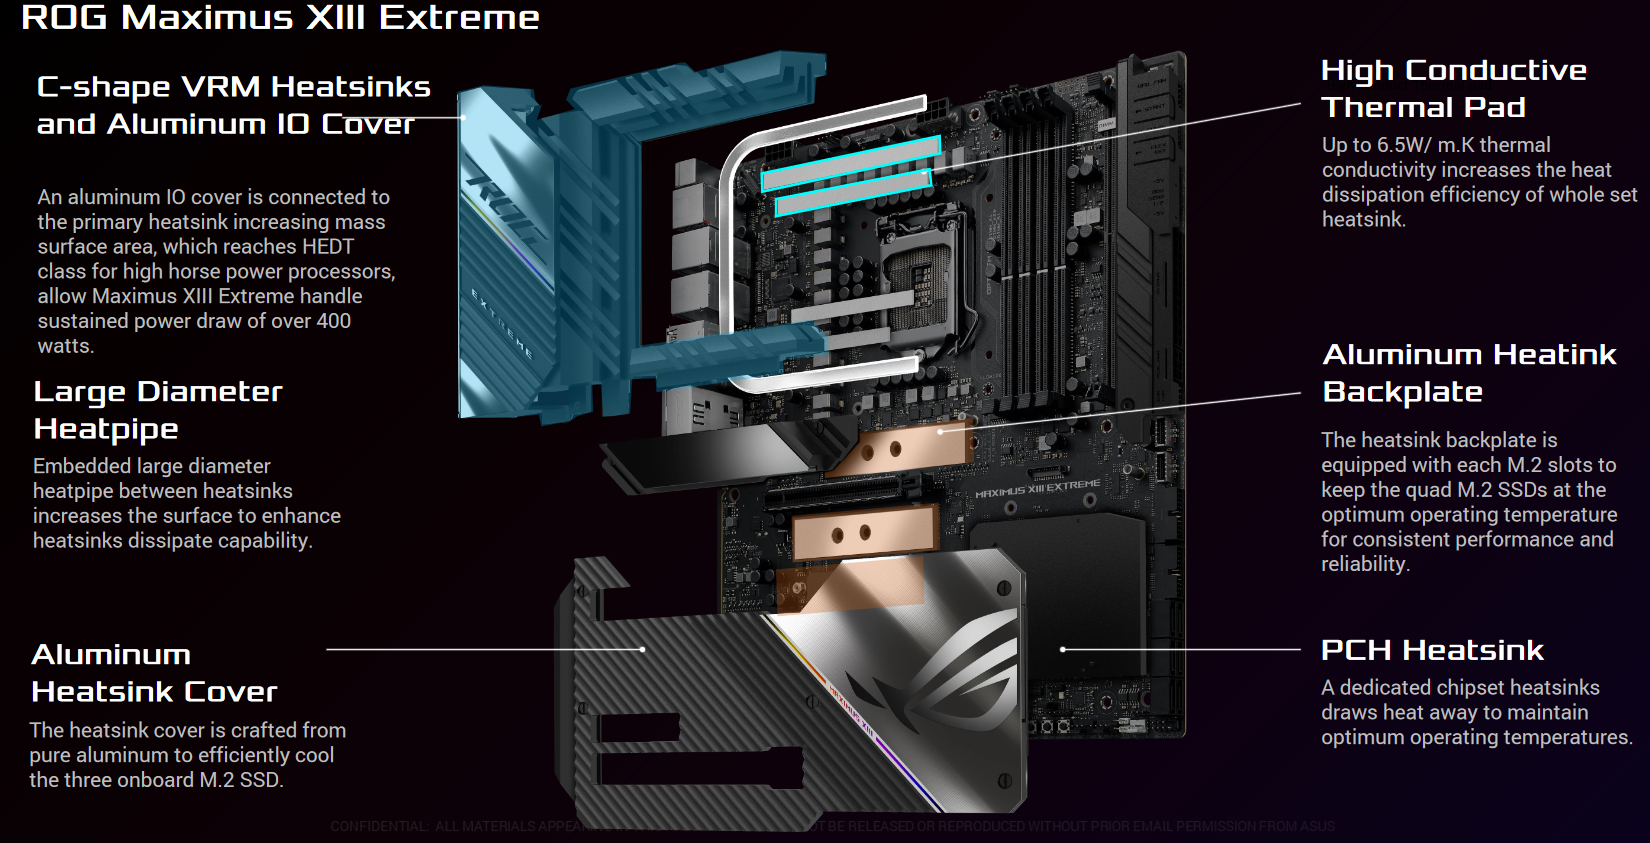 ASUS ROG Maximus XIII Extreme Cooling